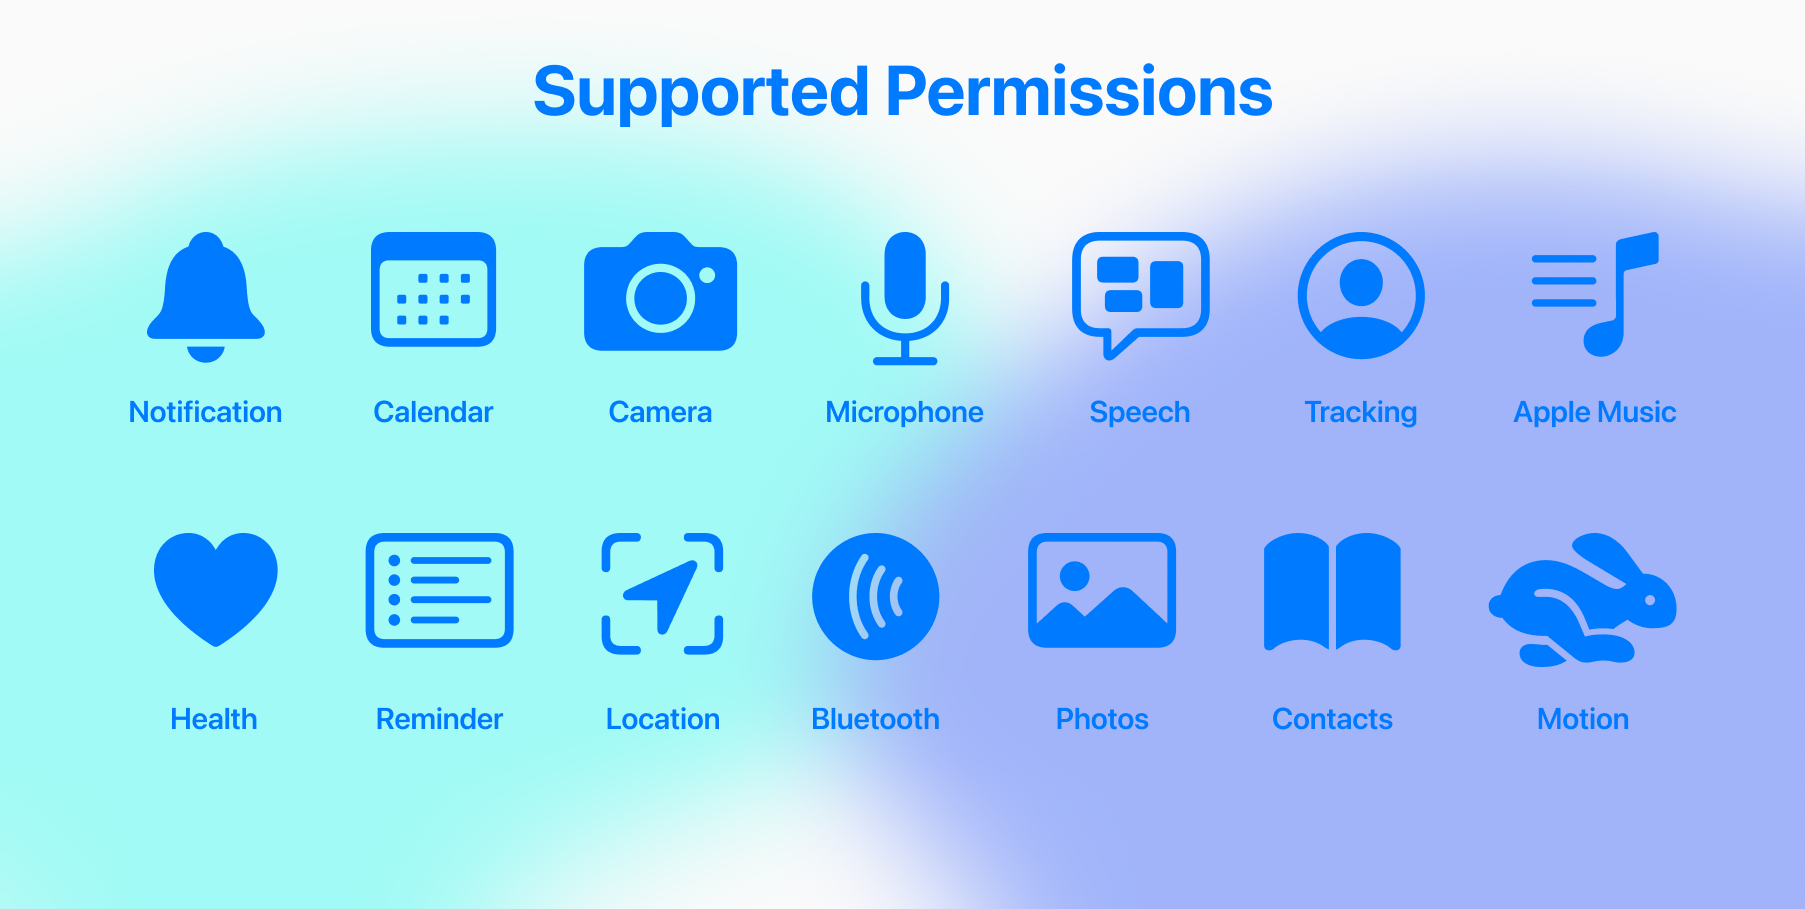 A card of all the permissions